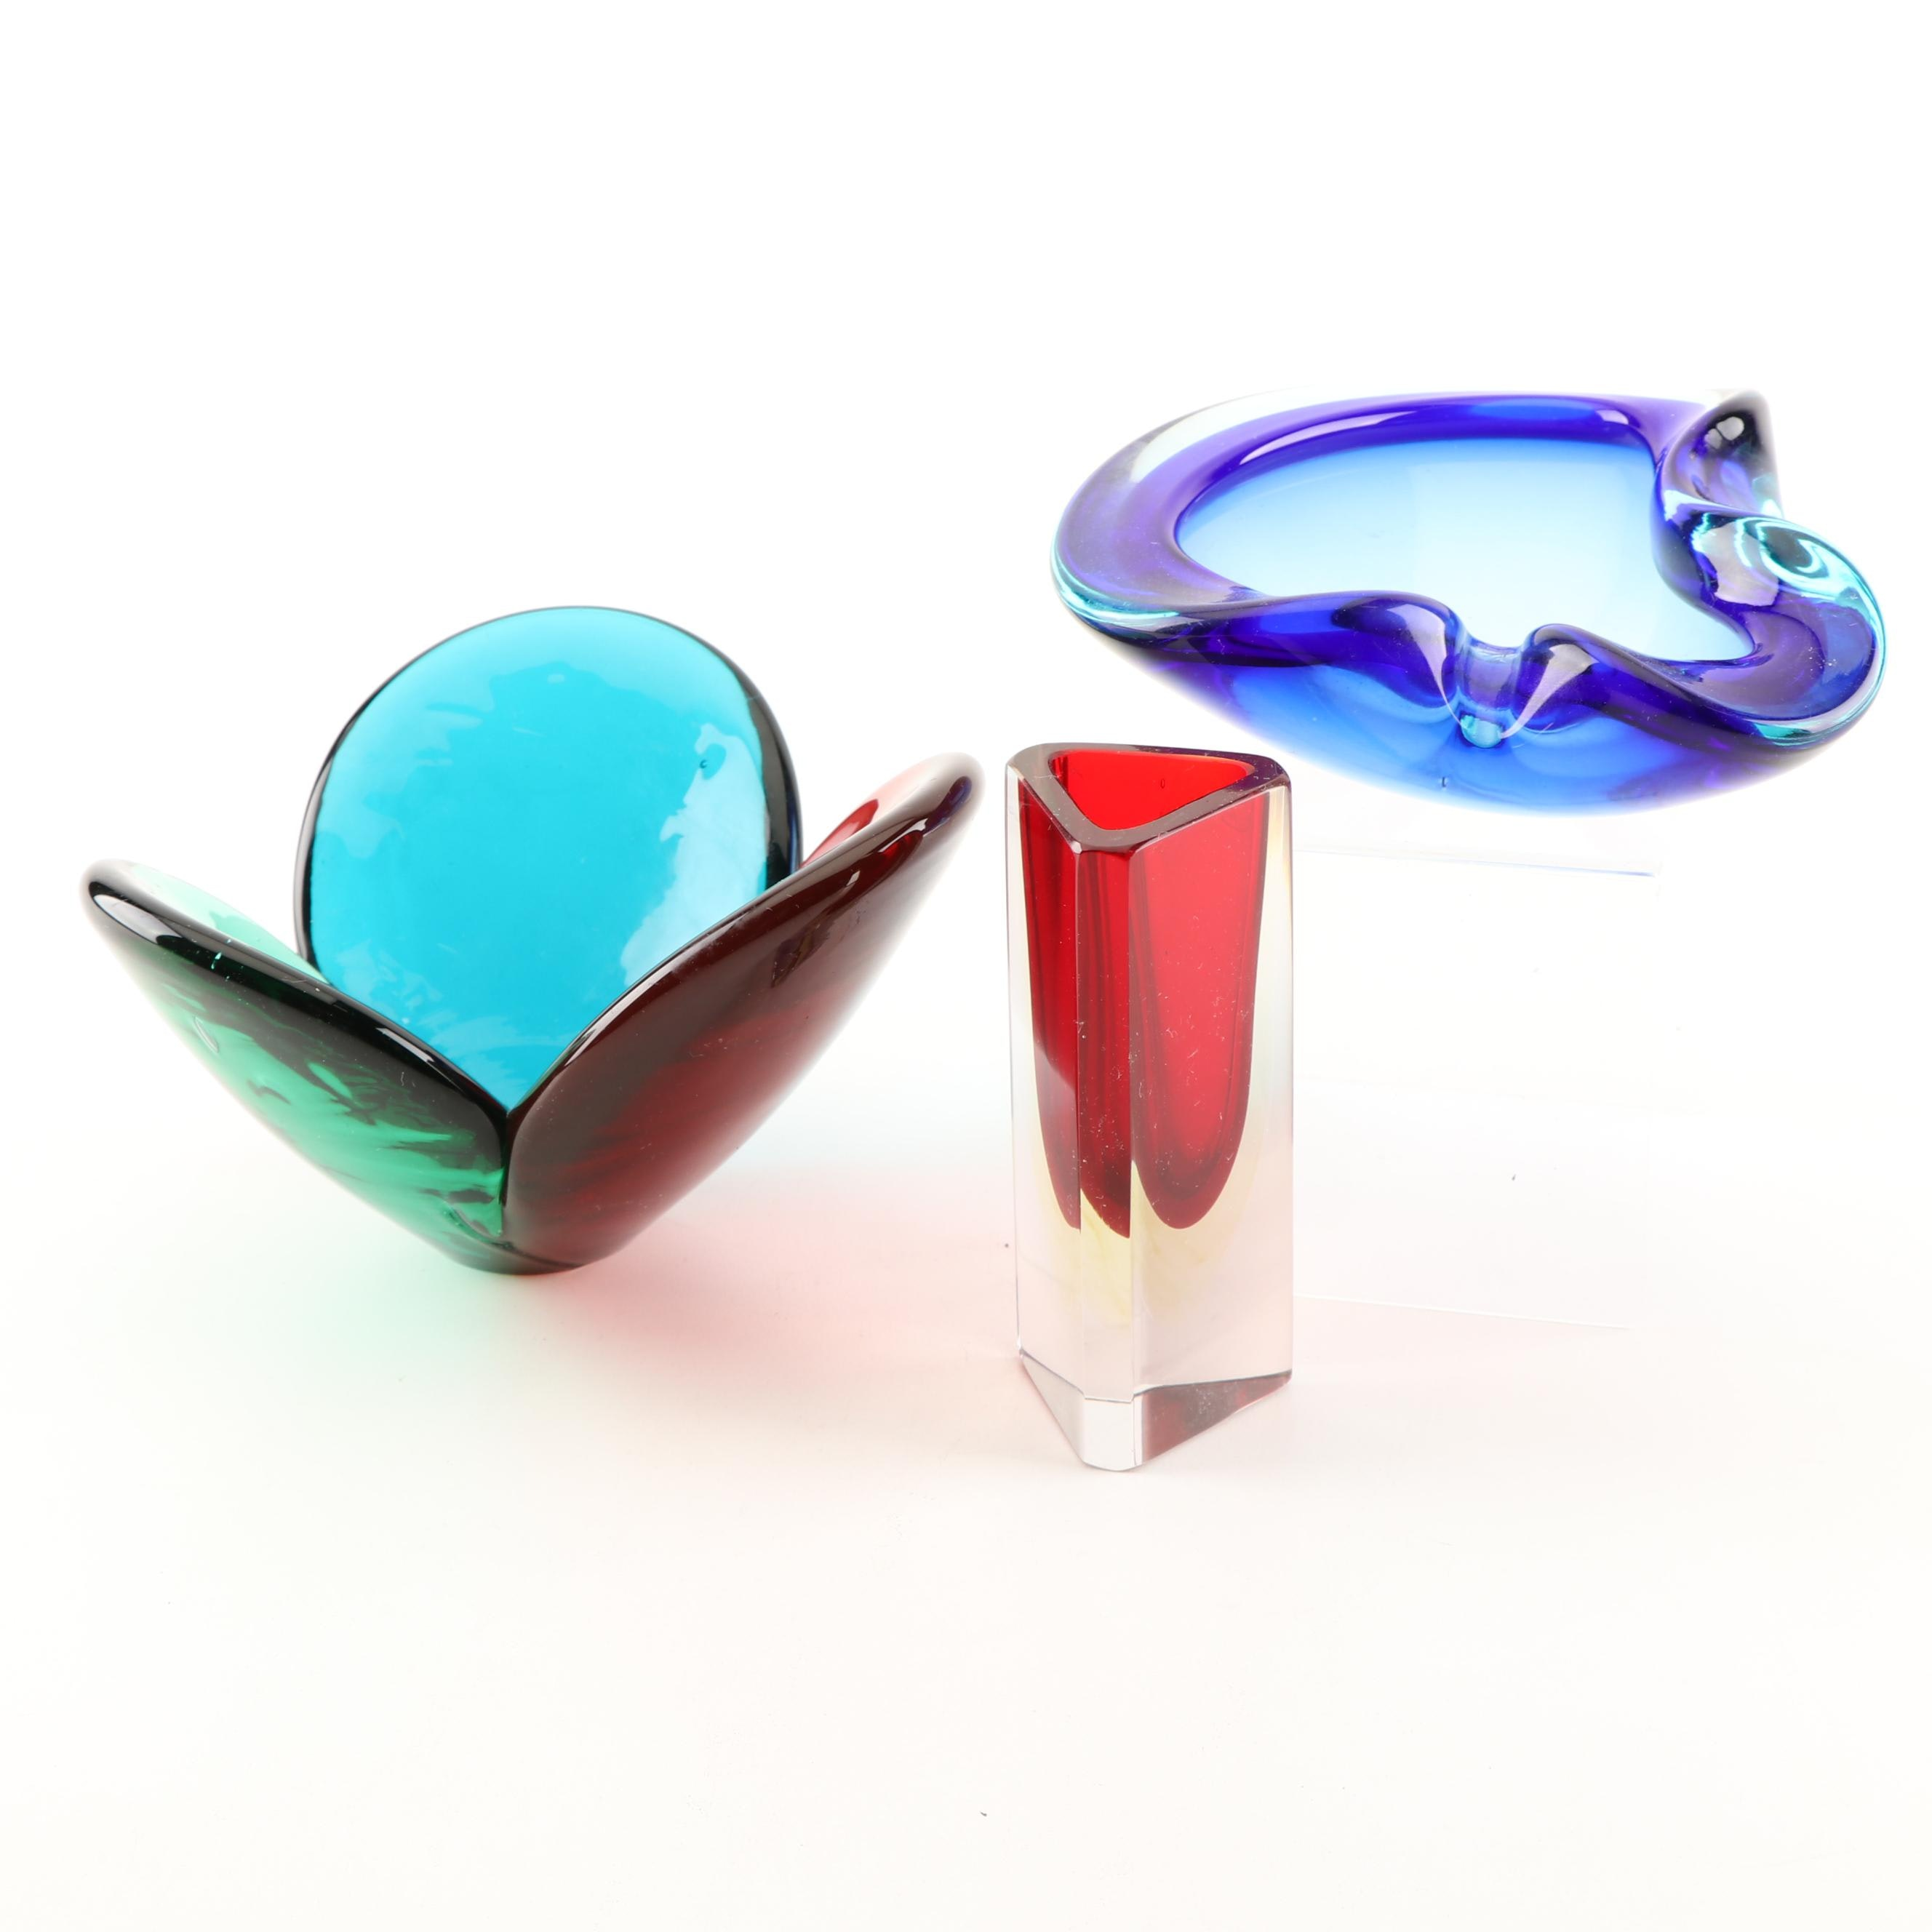 Art Glass Bowls and Bud Vase, Contemporary